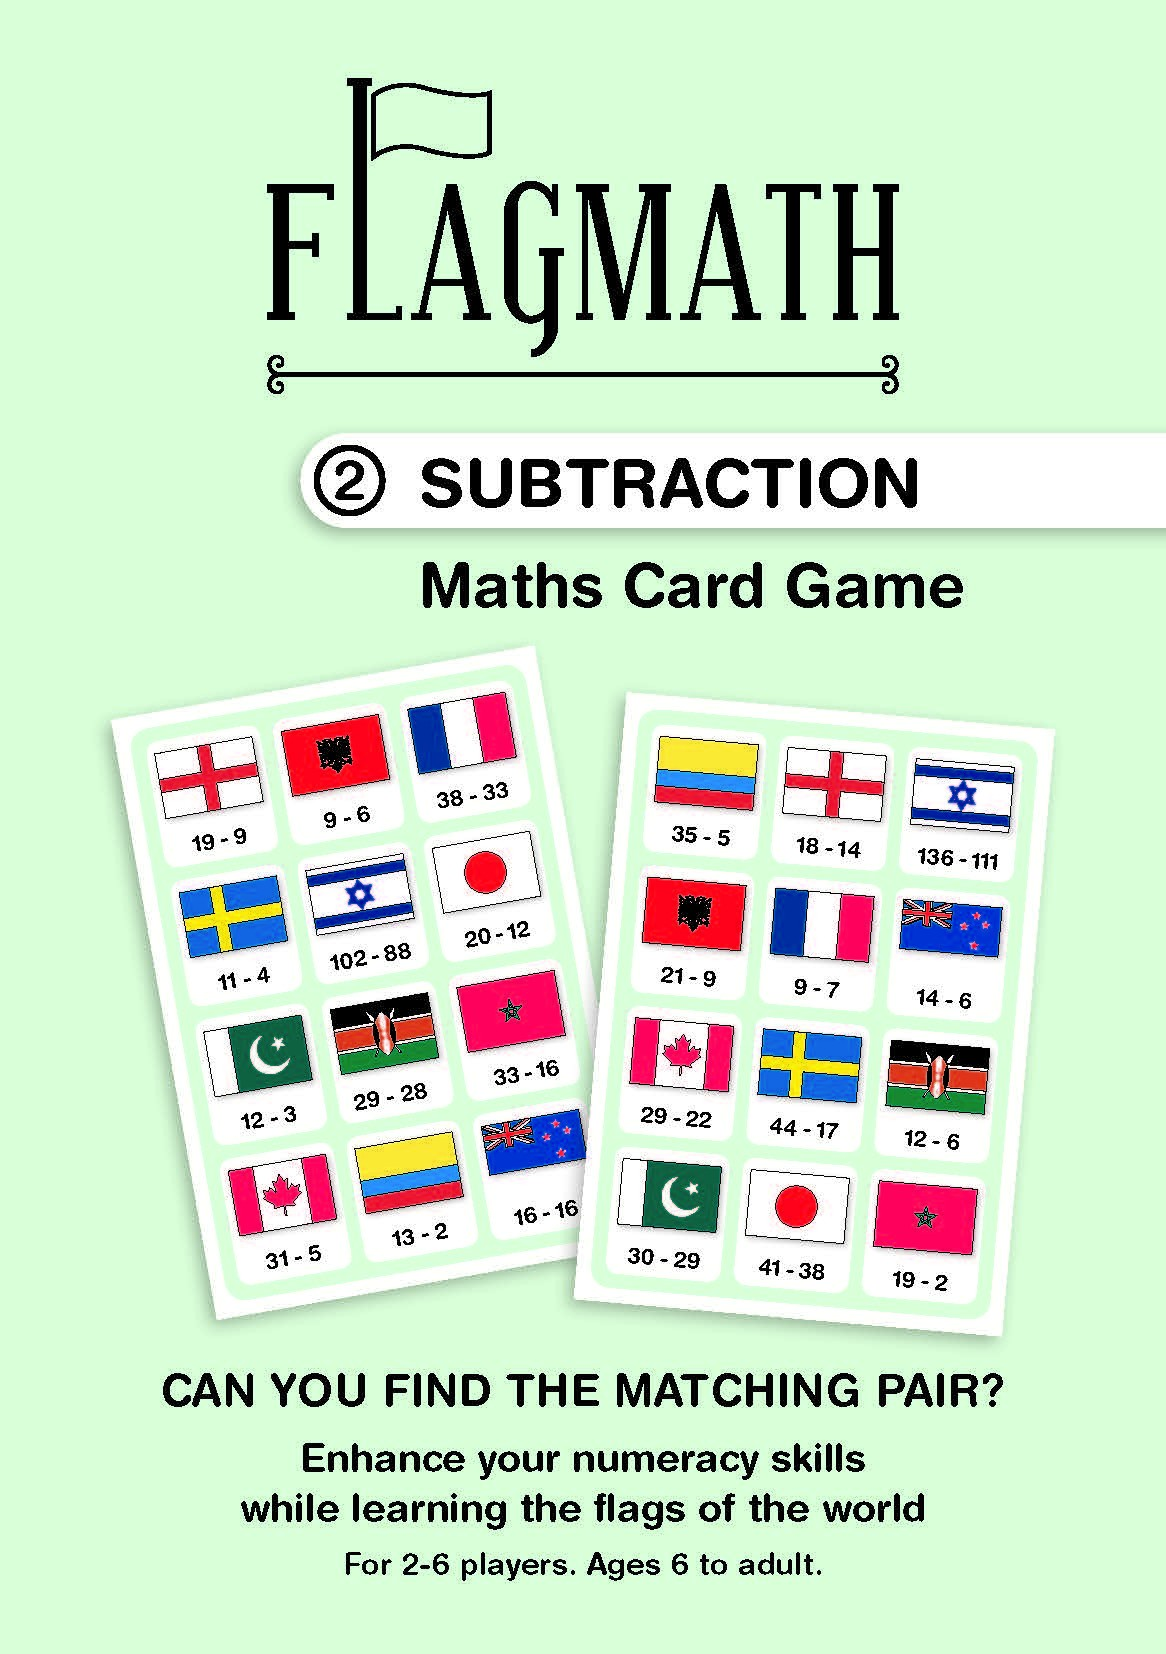 FlagMath - Subtraction: Mathematics Card Game